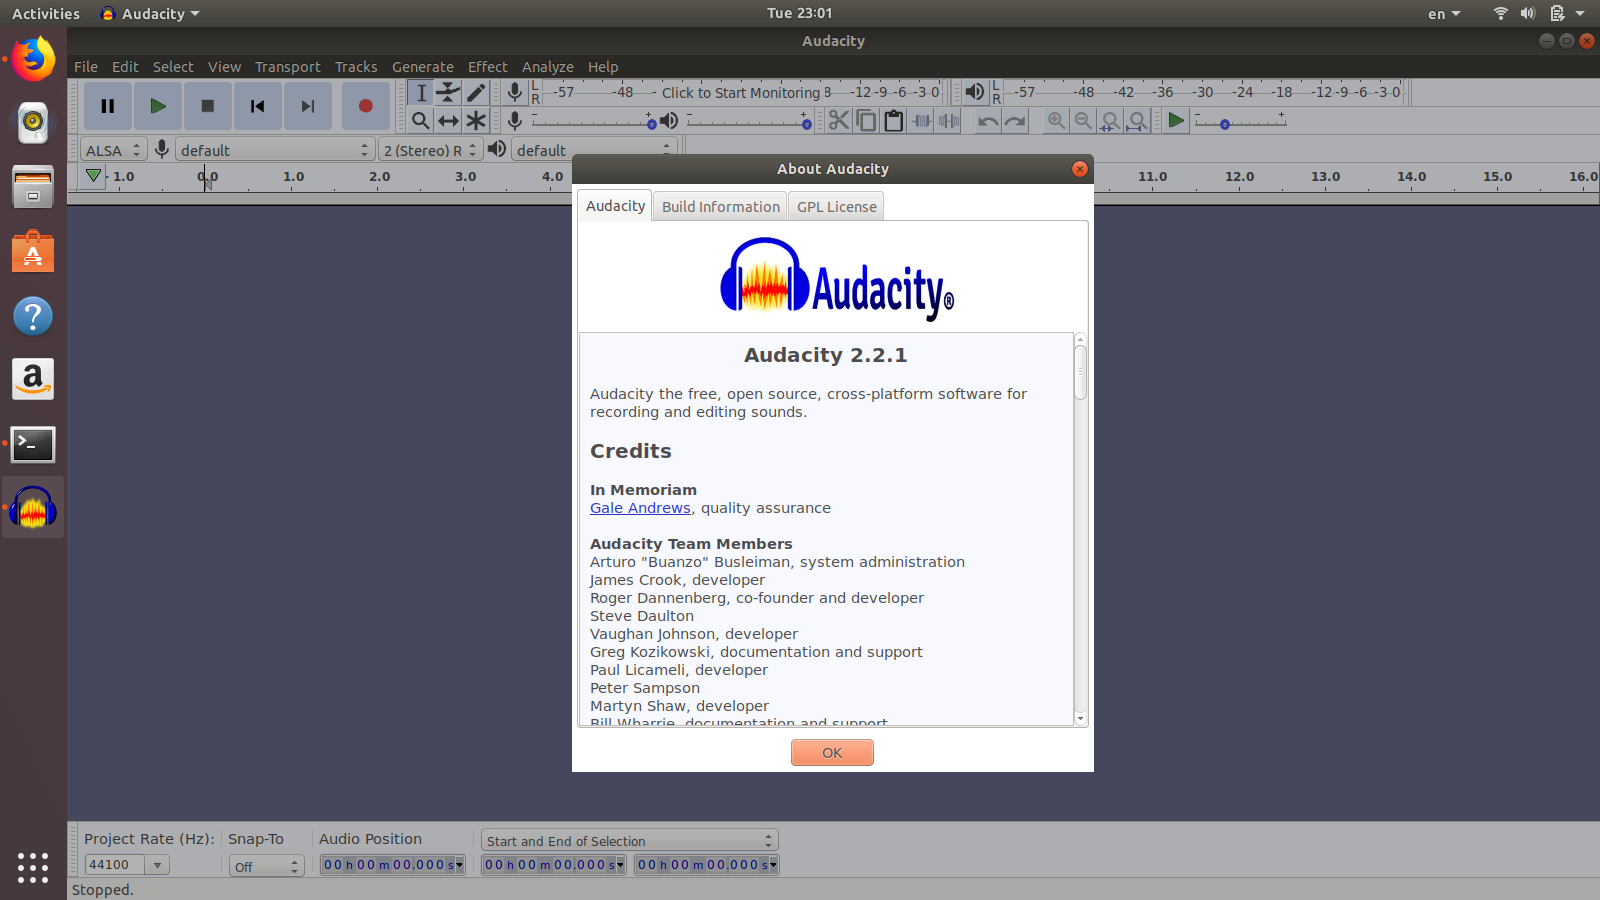 How to install program on Ubuntu: How to Install Audacity